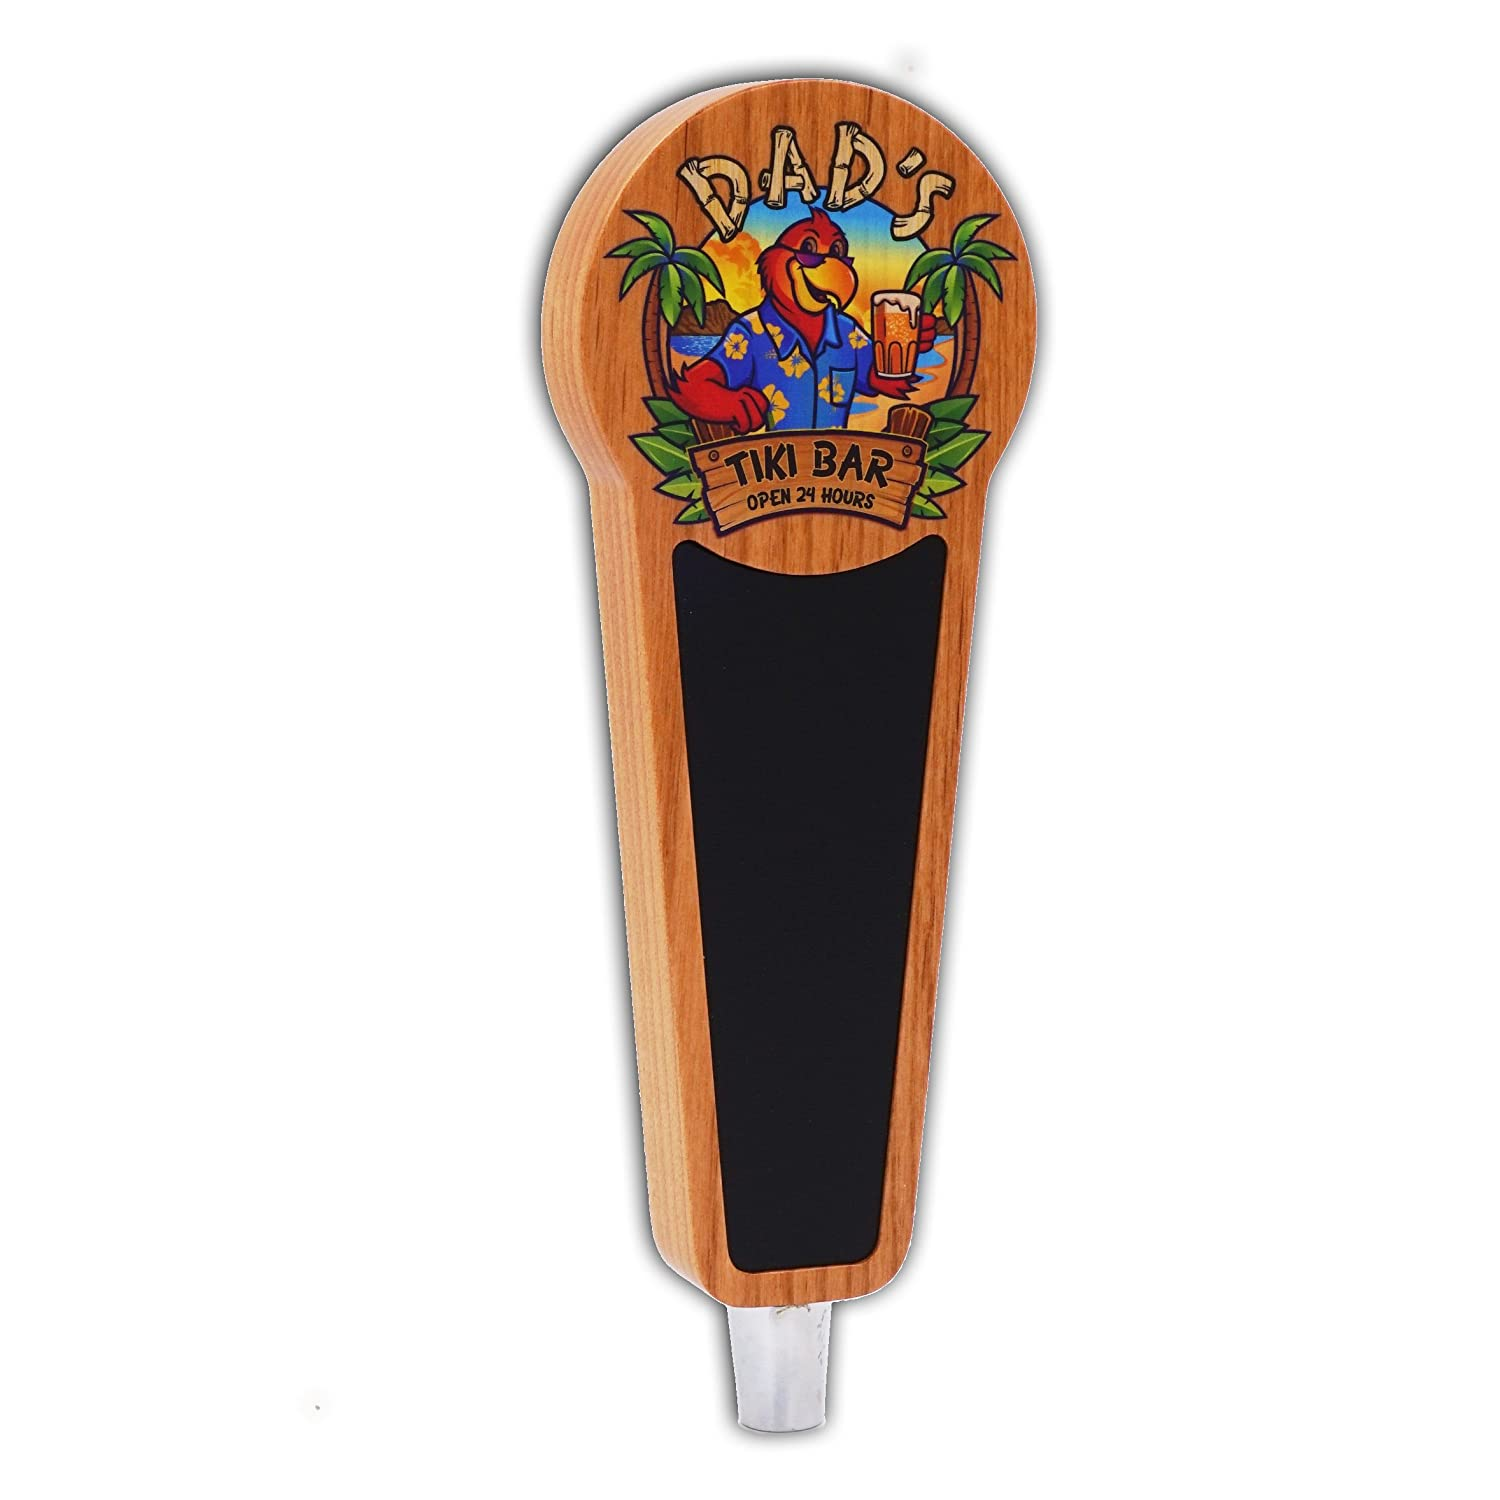 Beer Tap Handle with Chalkboard for Kegerator-Tiki Bar Edition